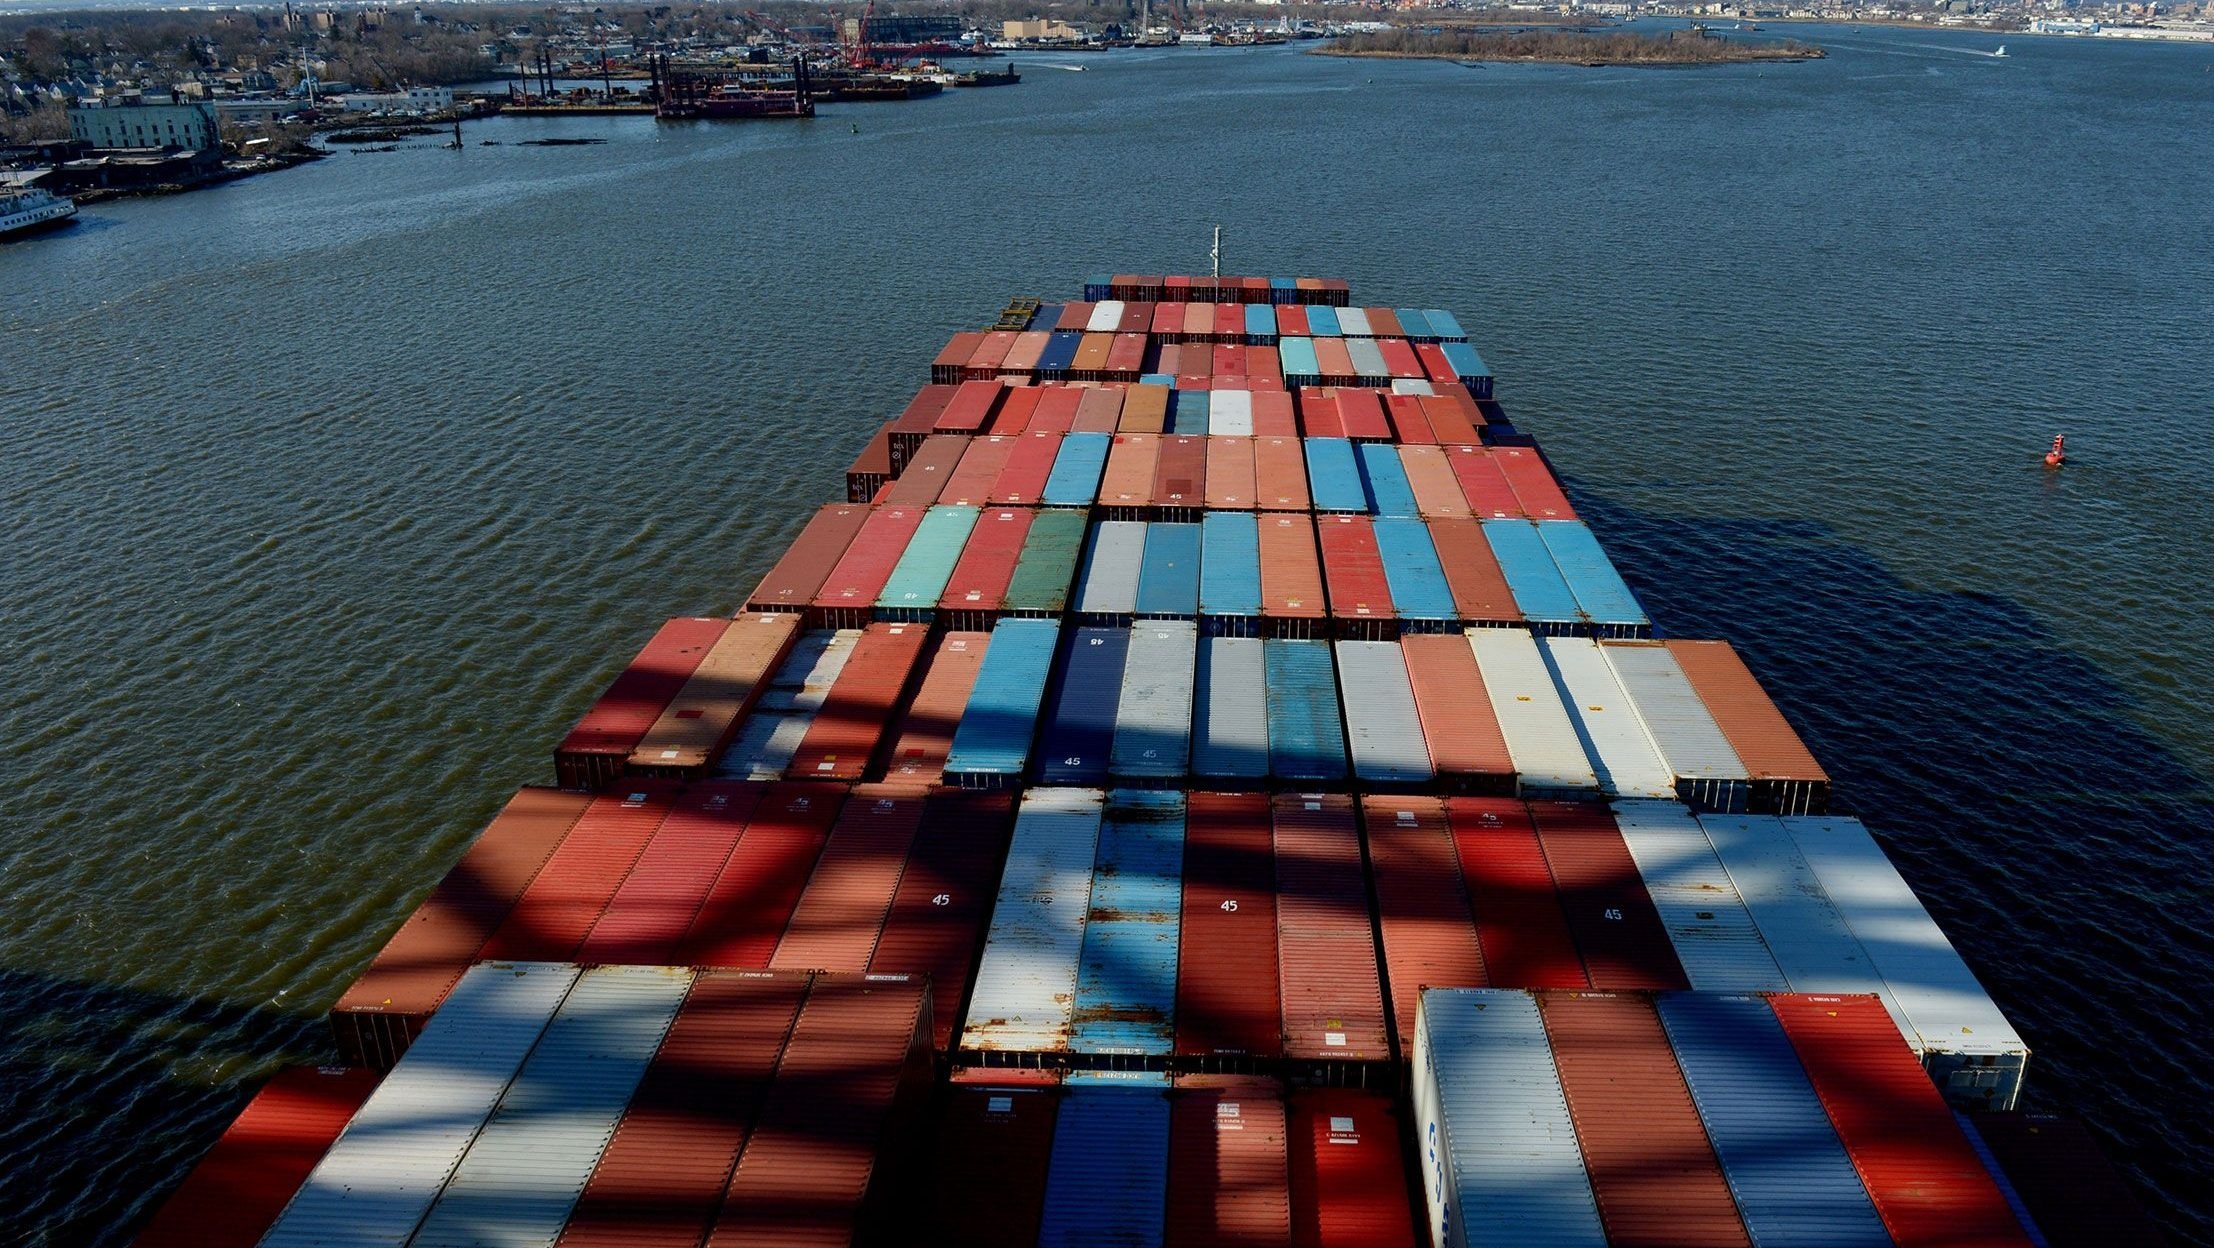 Dec. 28, 2012. A container ship makes its way into Newark Bay in Bayonne, New Jersey. A temporary deal between the International Longshoremen's Association and the United States Maritime Alliance was reached to avert a strike at East Coast ports